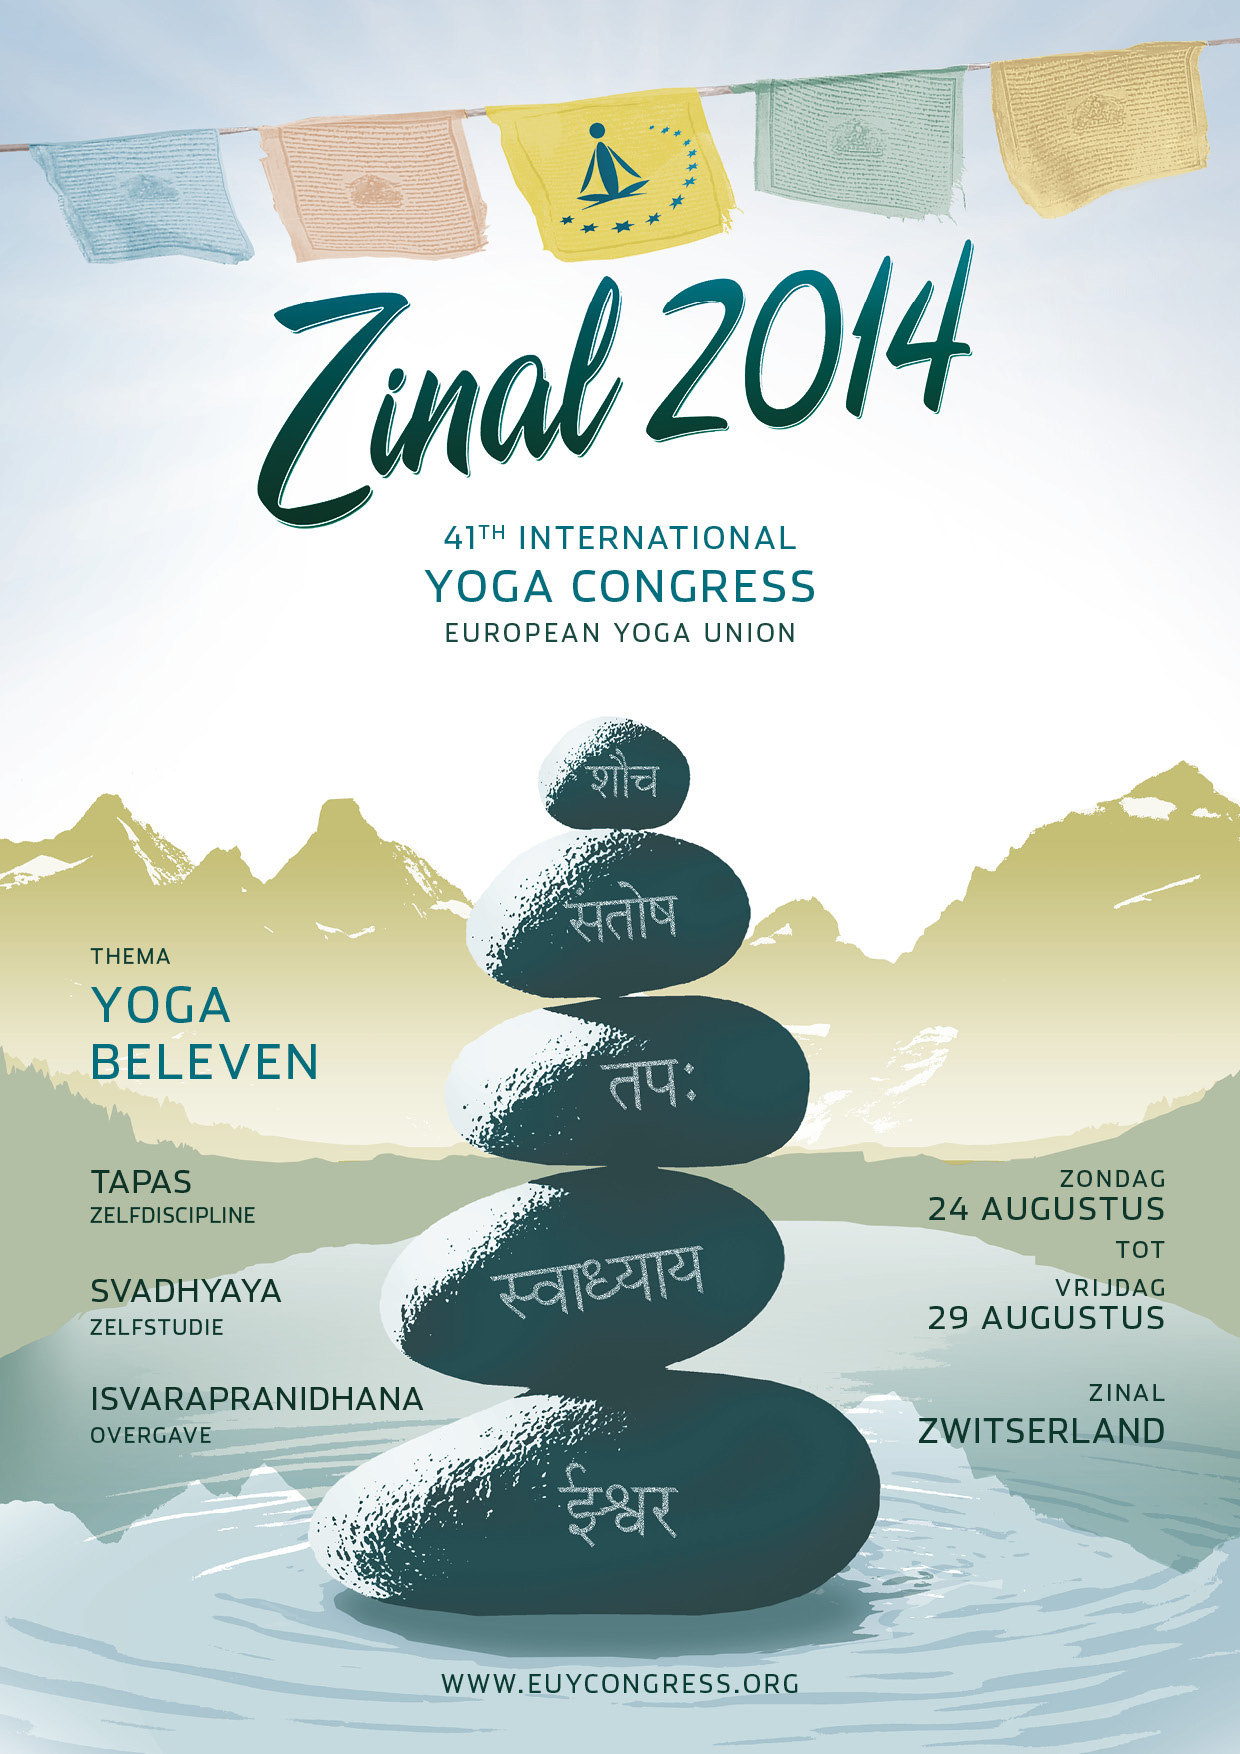 Advertentie_Zinal2014_A4